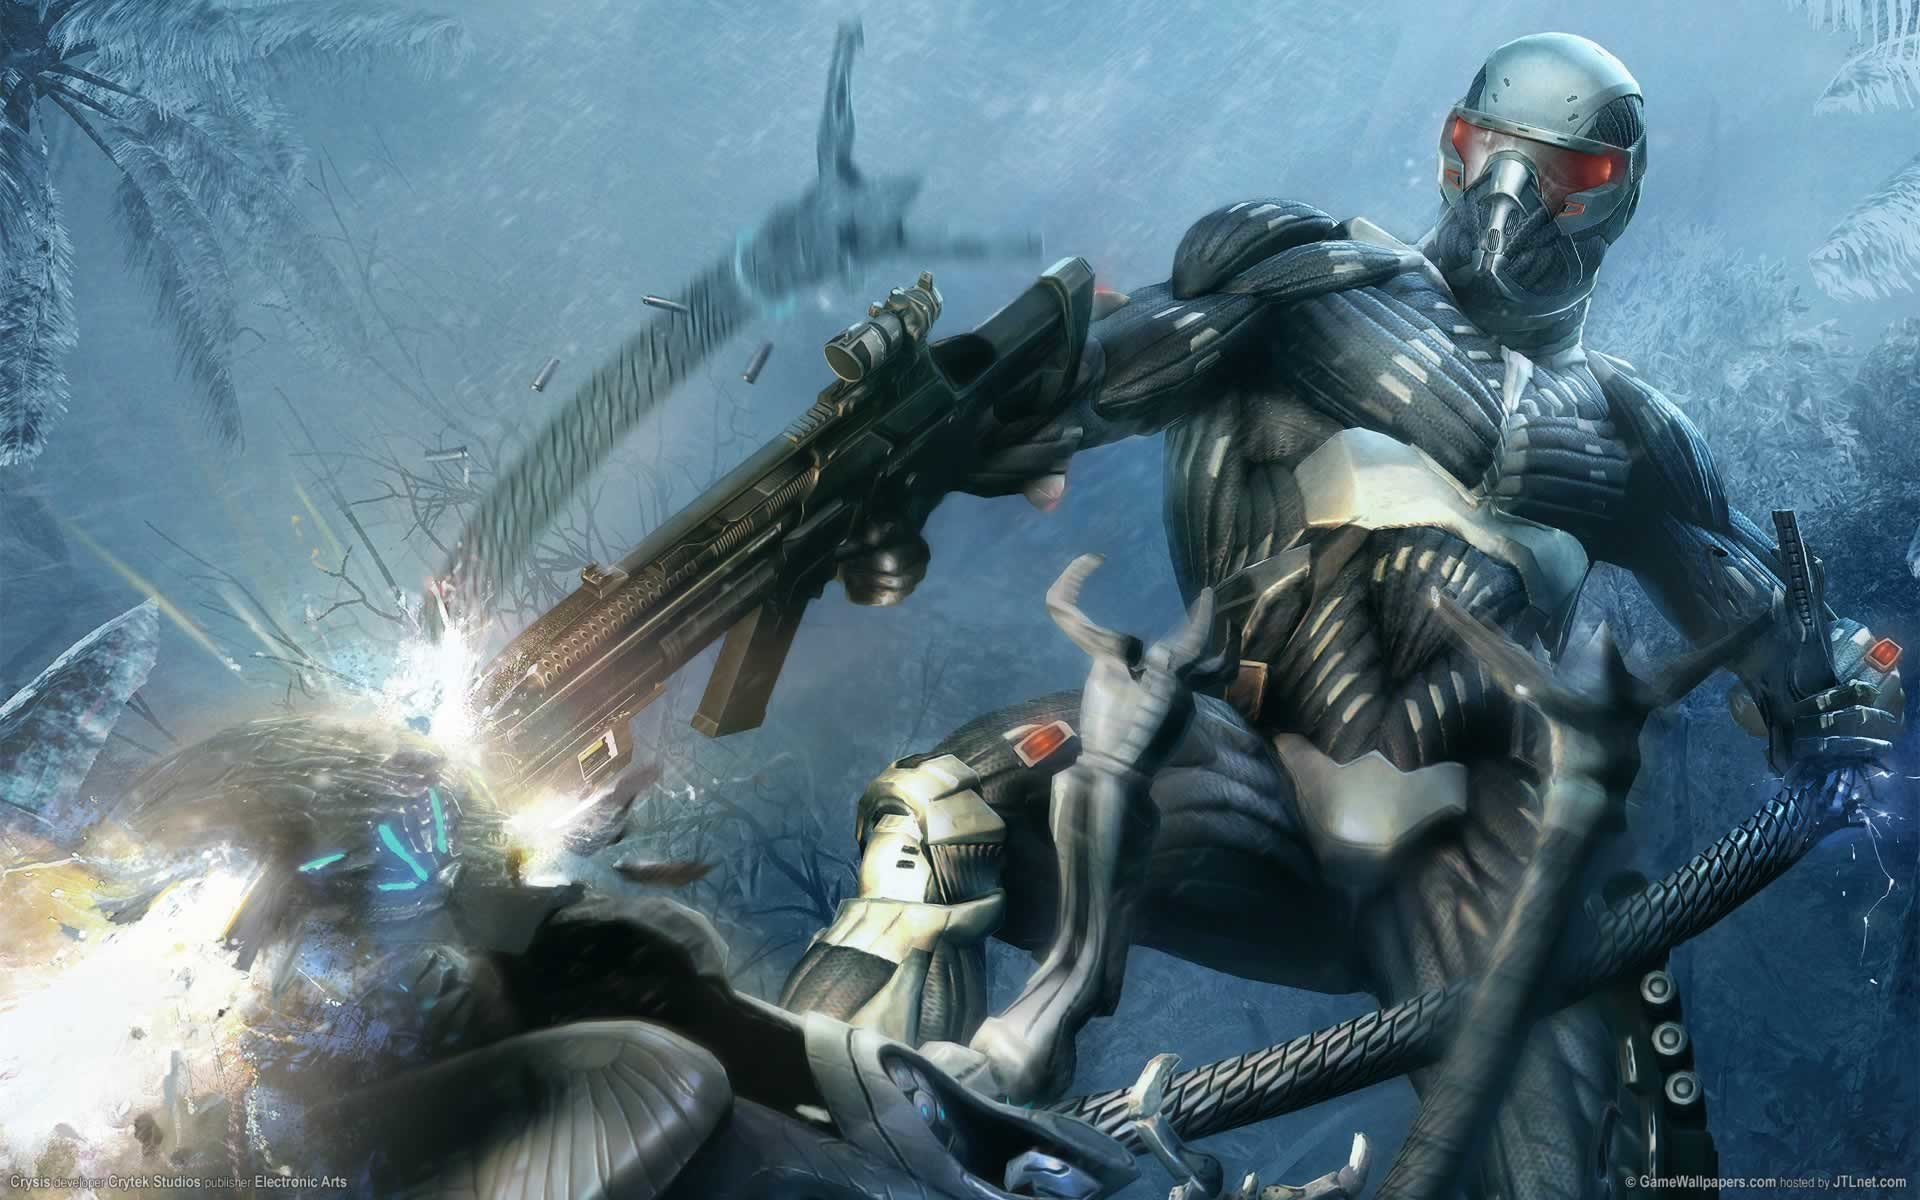 1920x1200 Crysis images Pics from in the game HD wallpaper and background photos